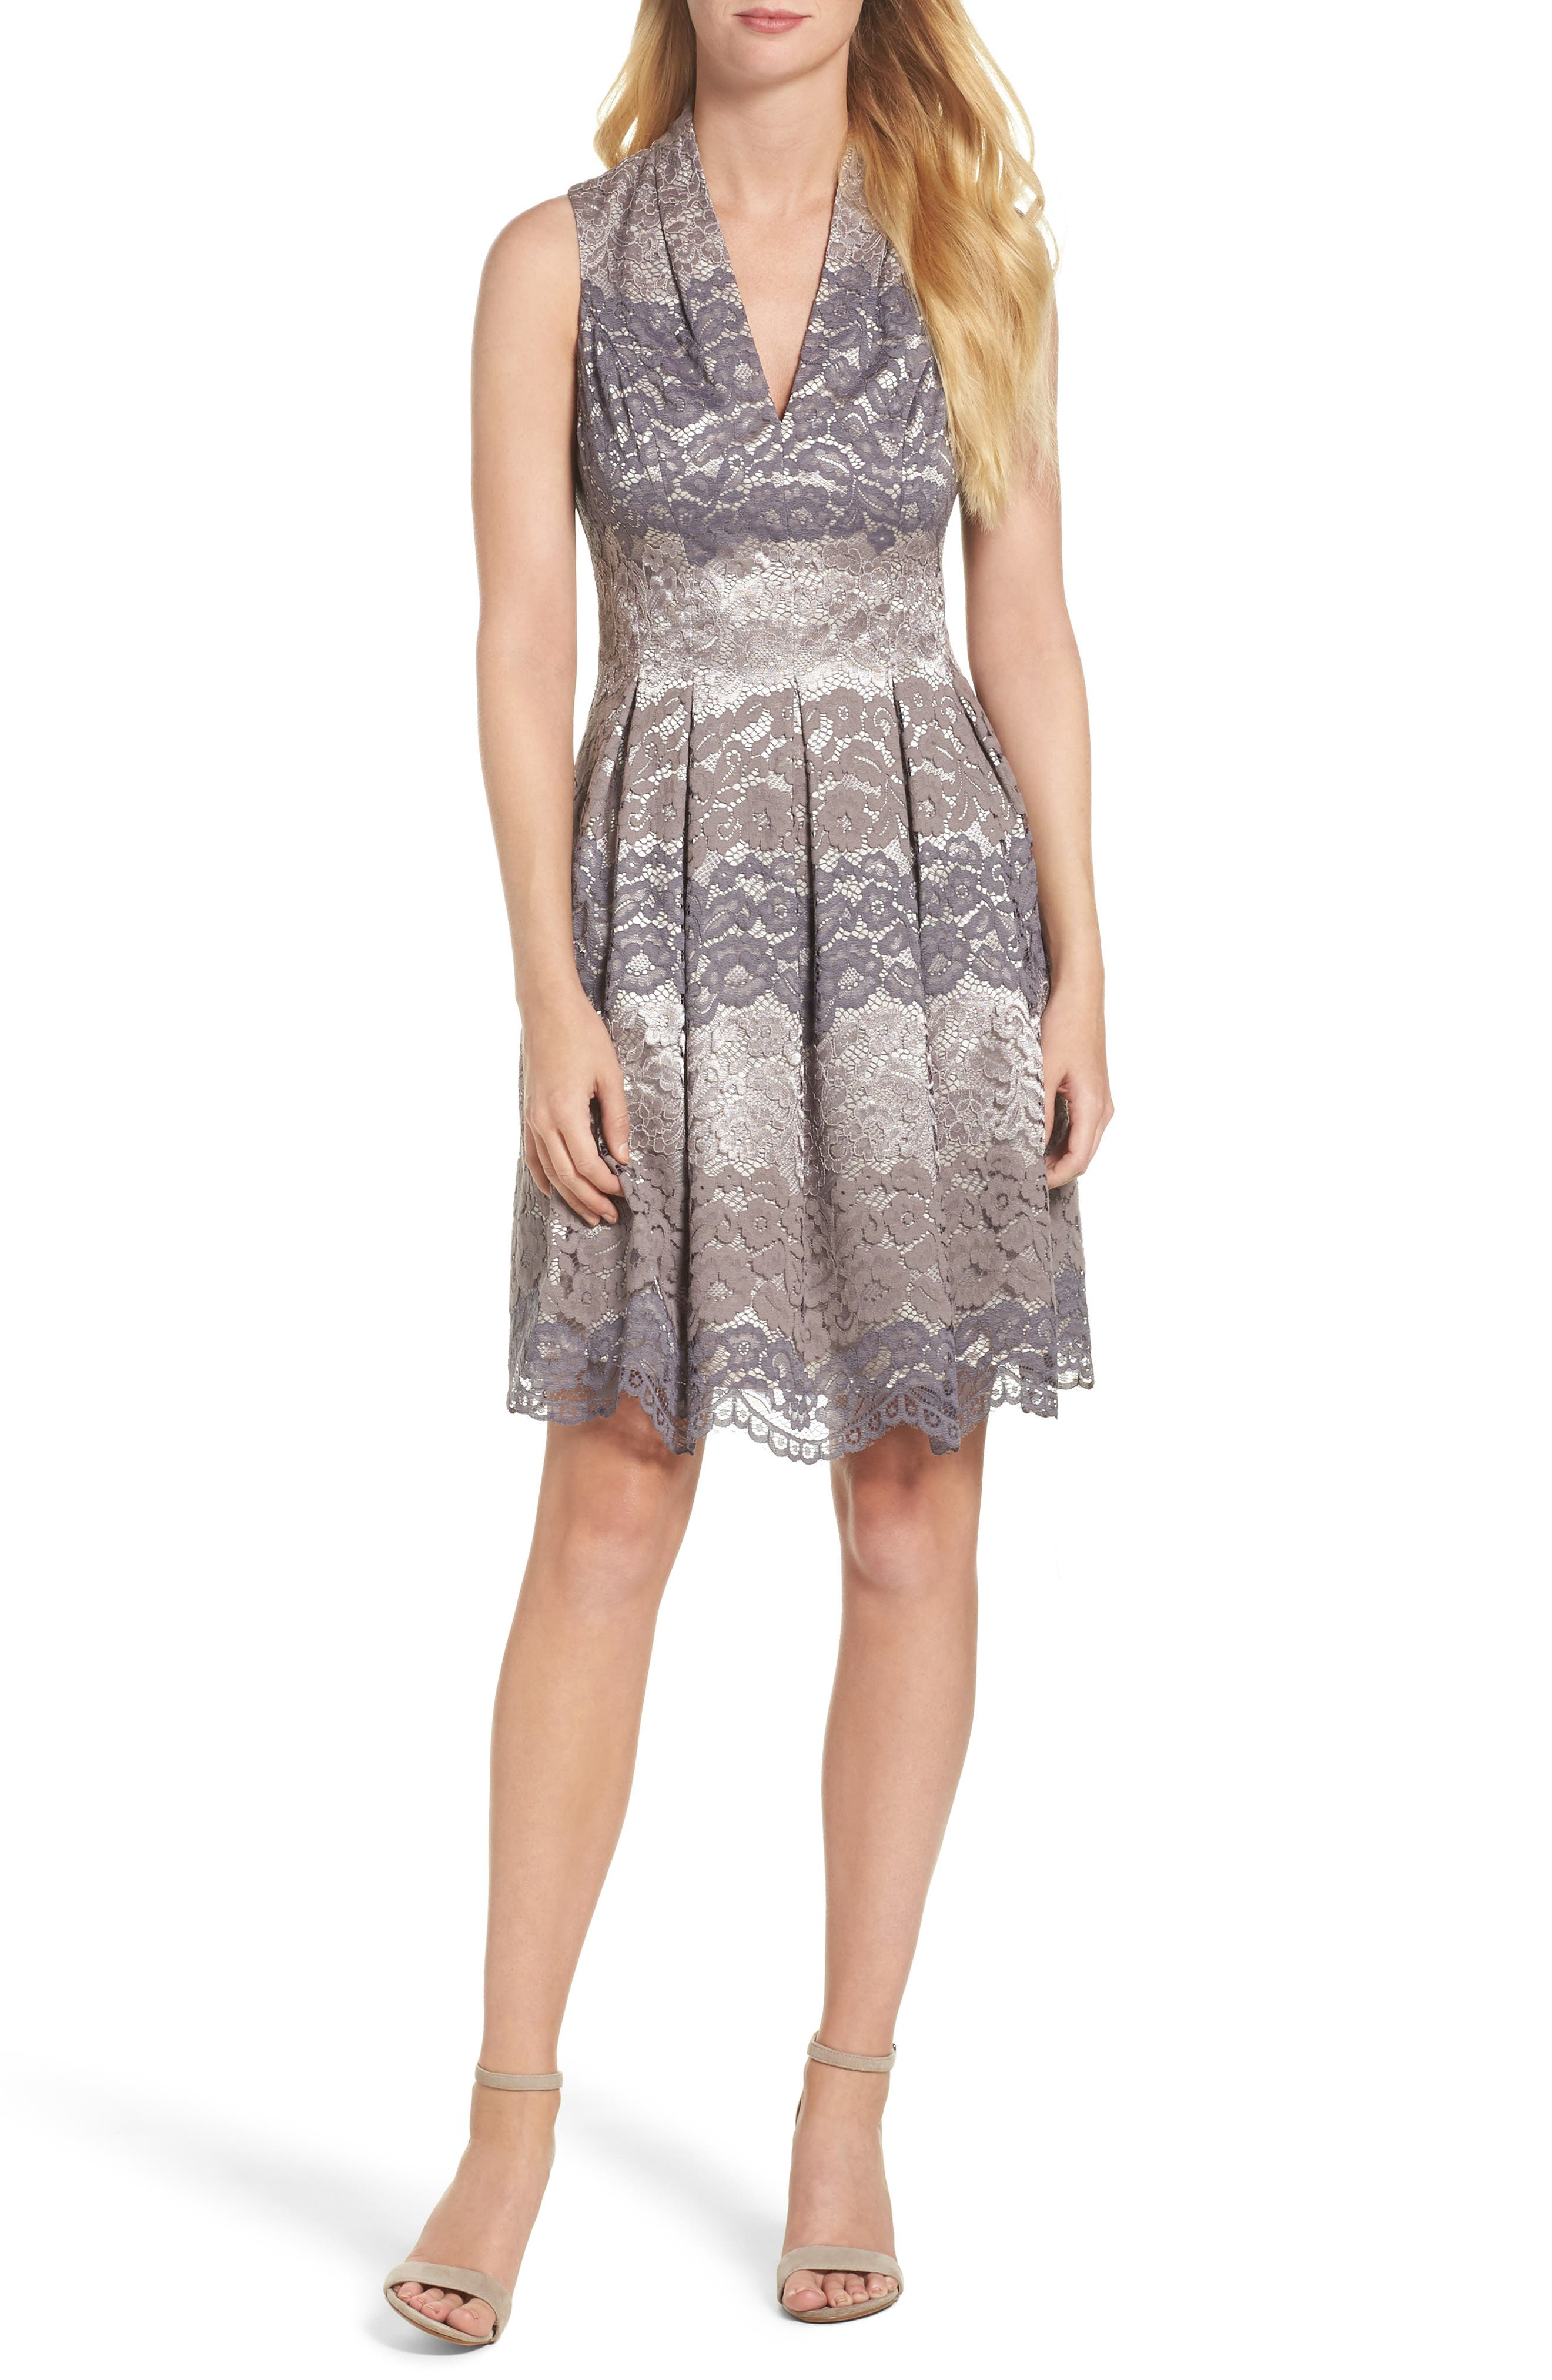 Vince Camuto Lace Fit & Flare Dress (Regular & Petite)